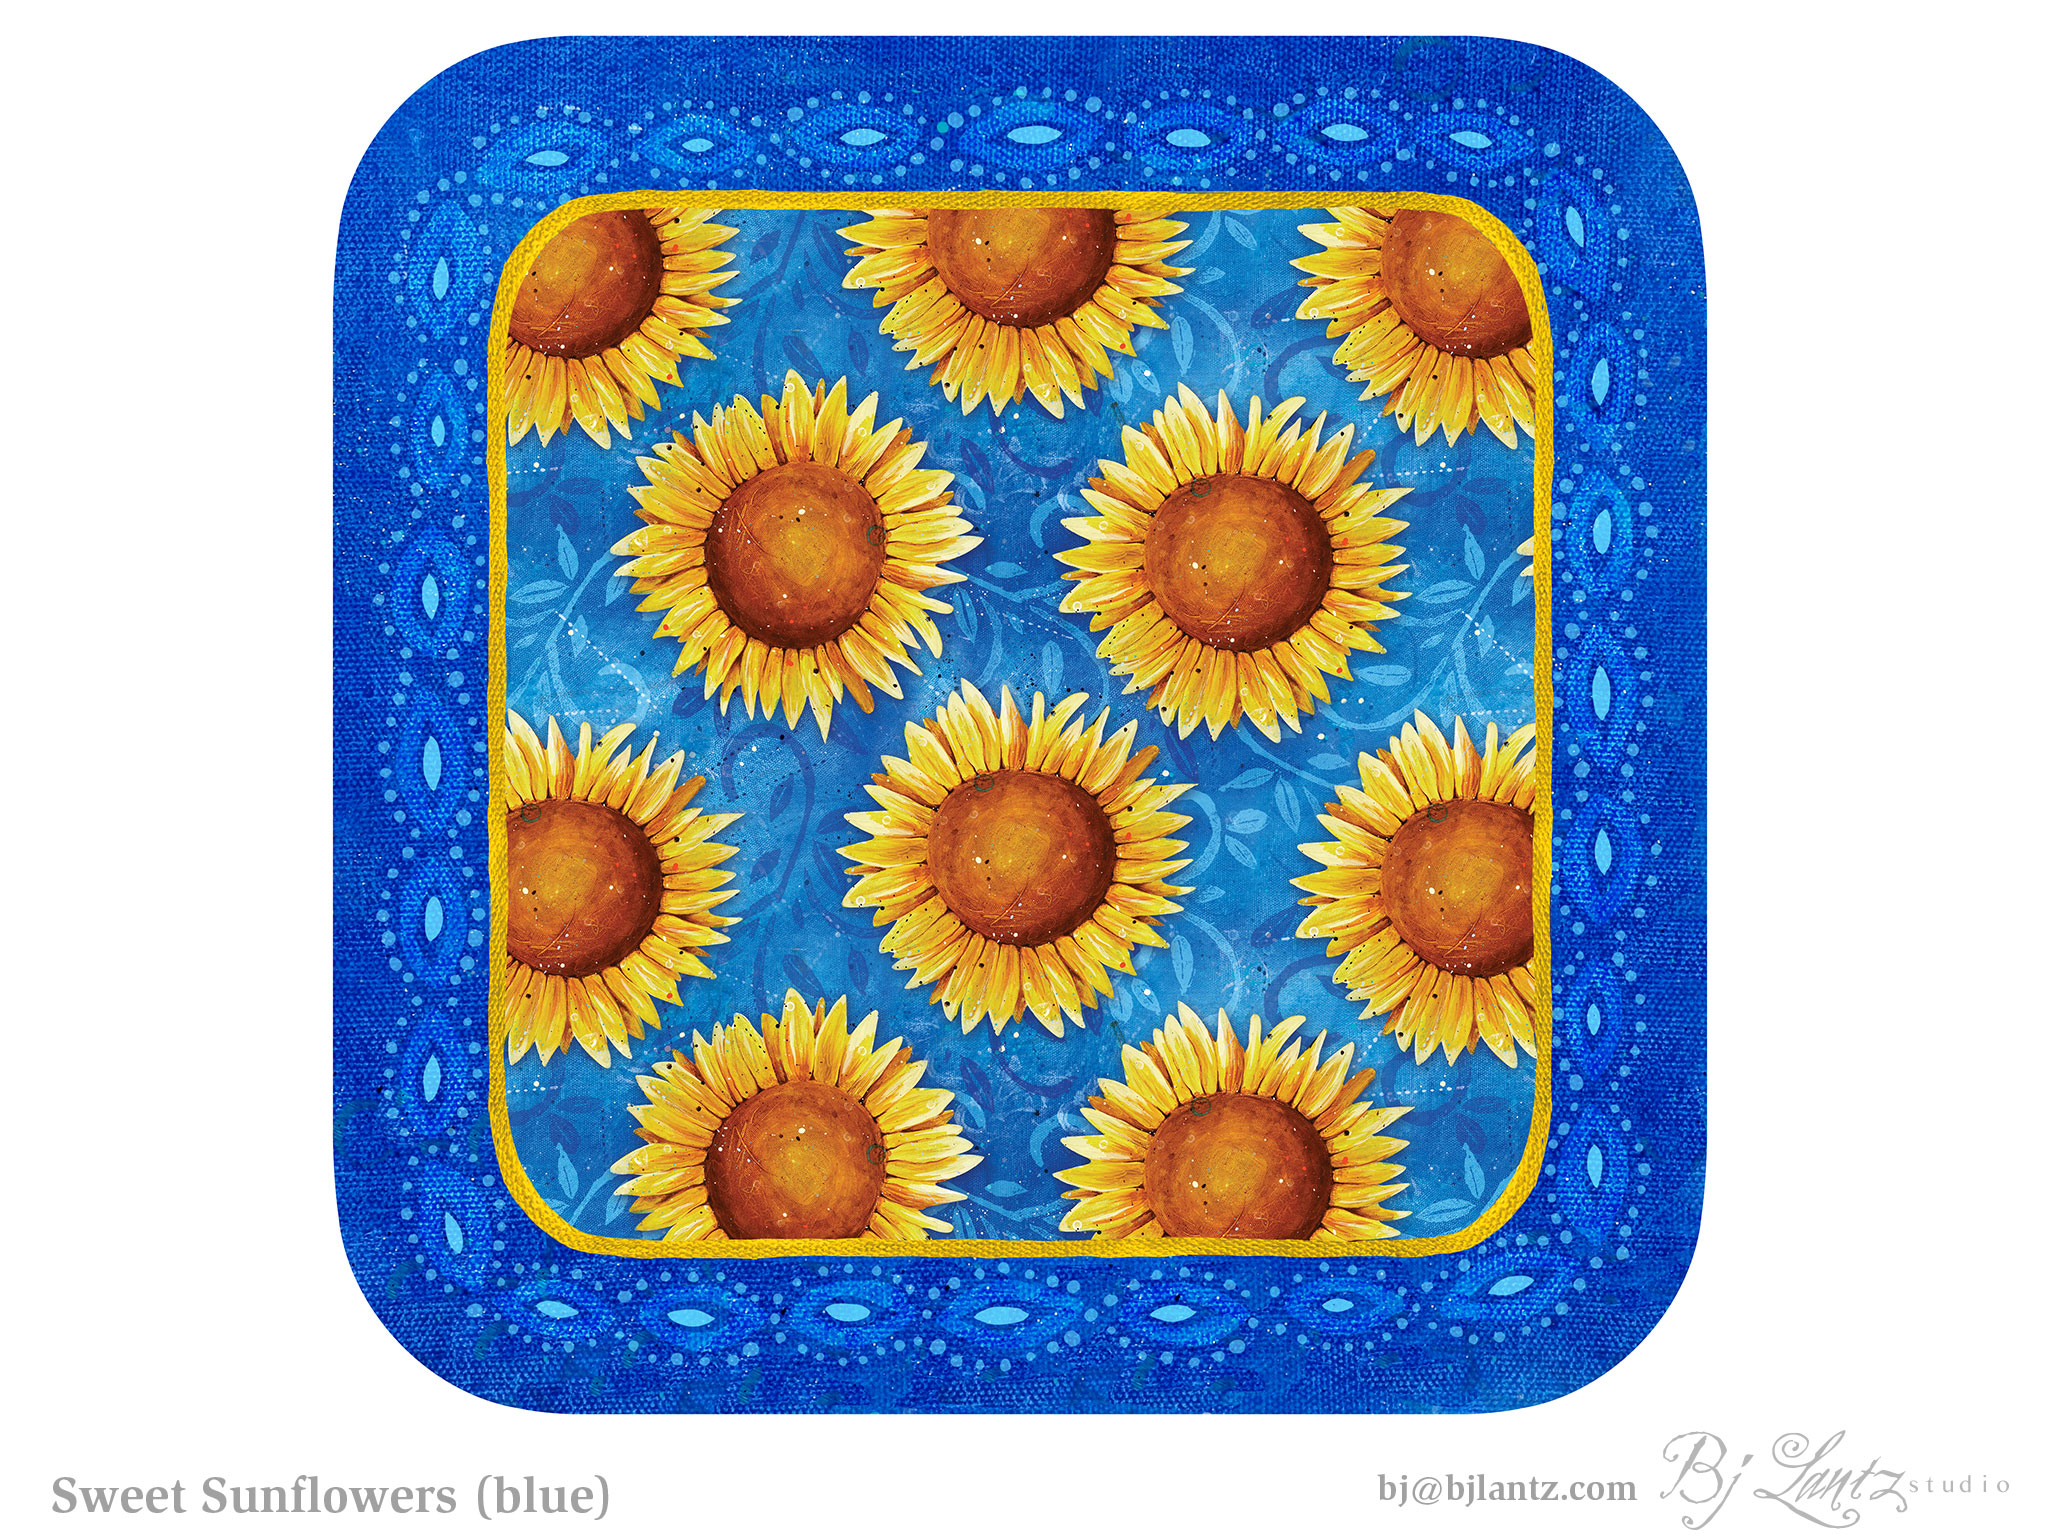 Sweetsunflowers-blue-BJ-Lantz_3.jpg